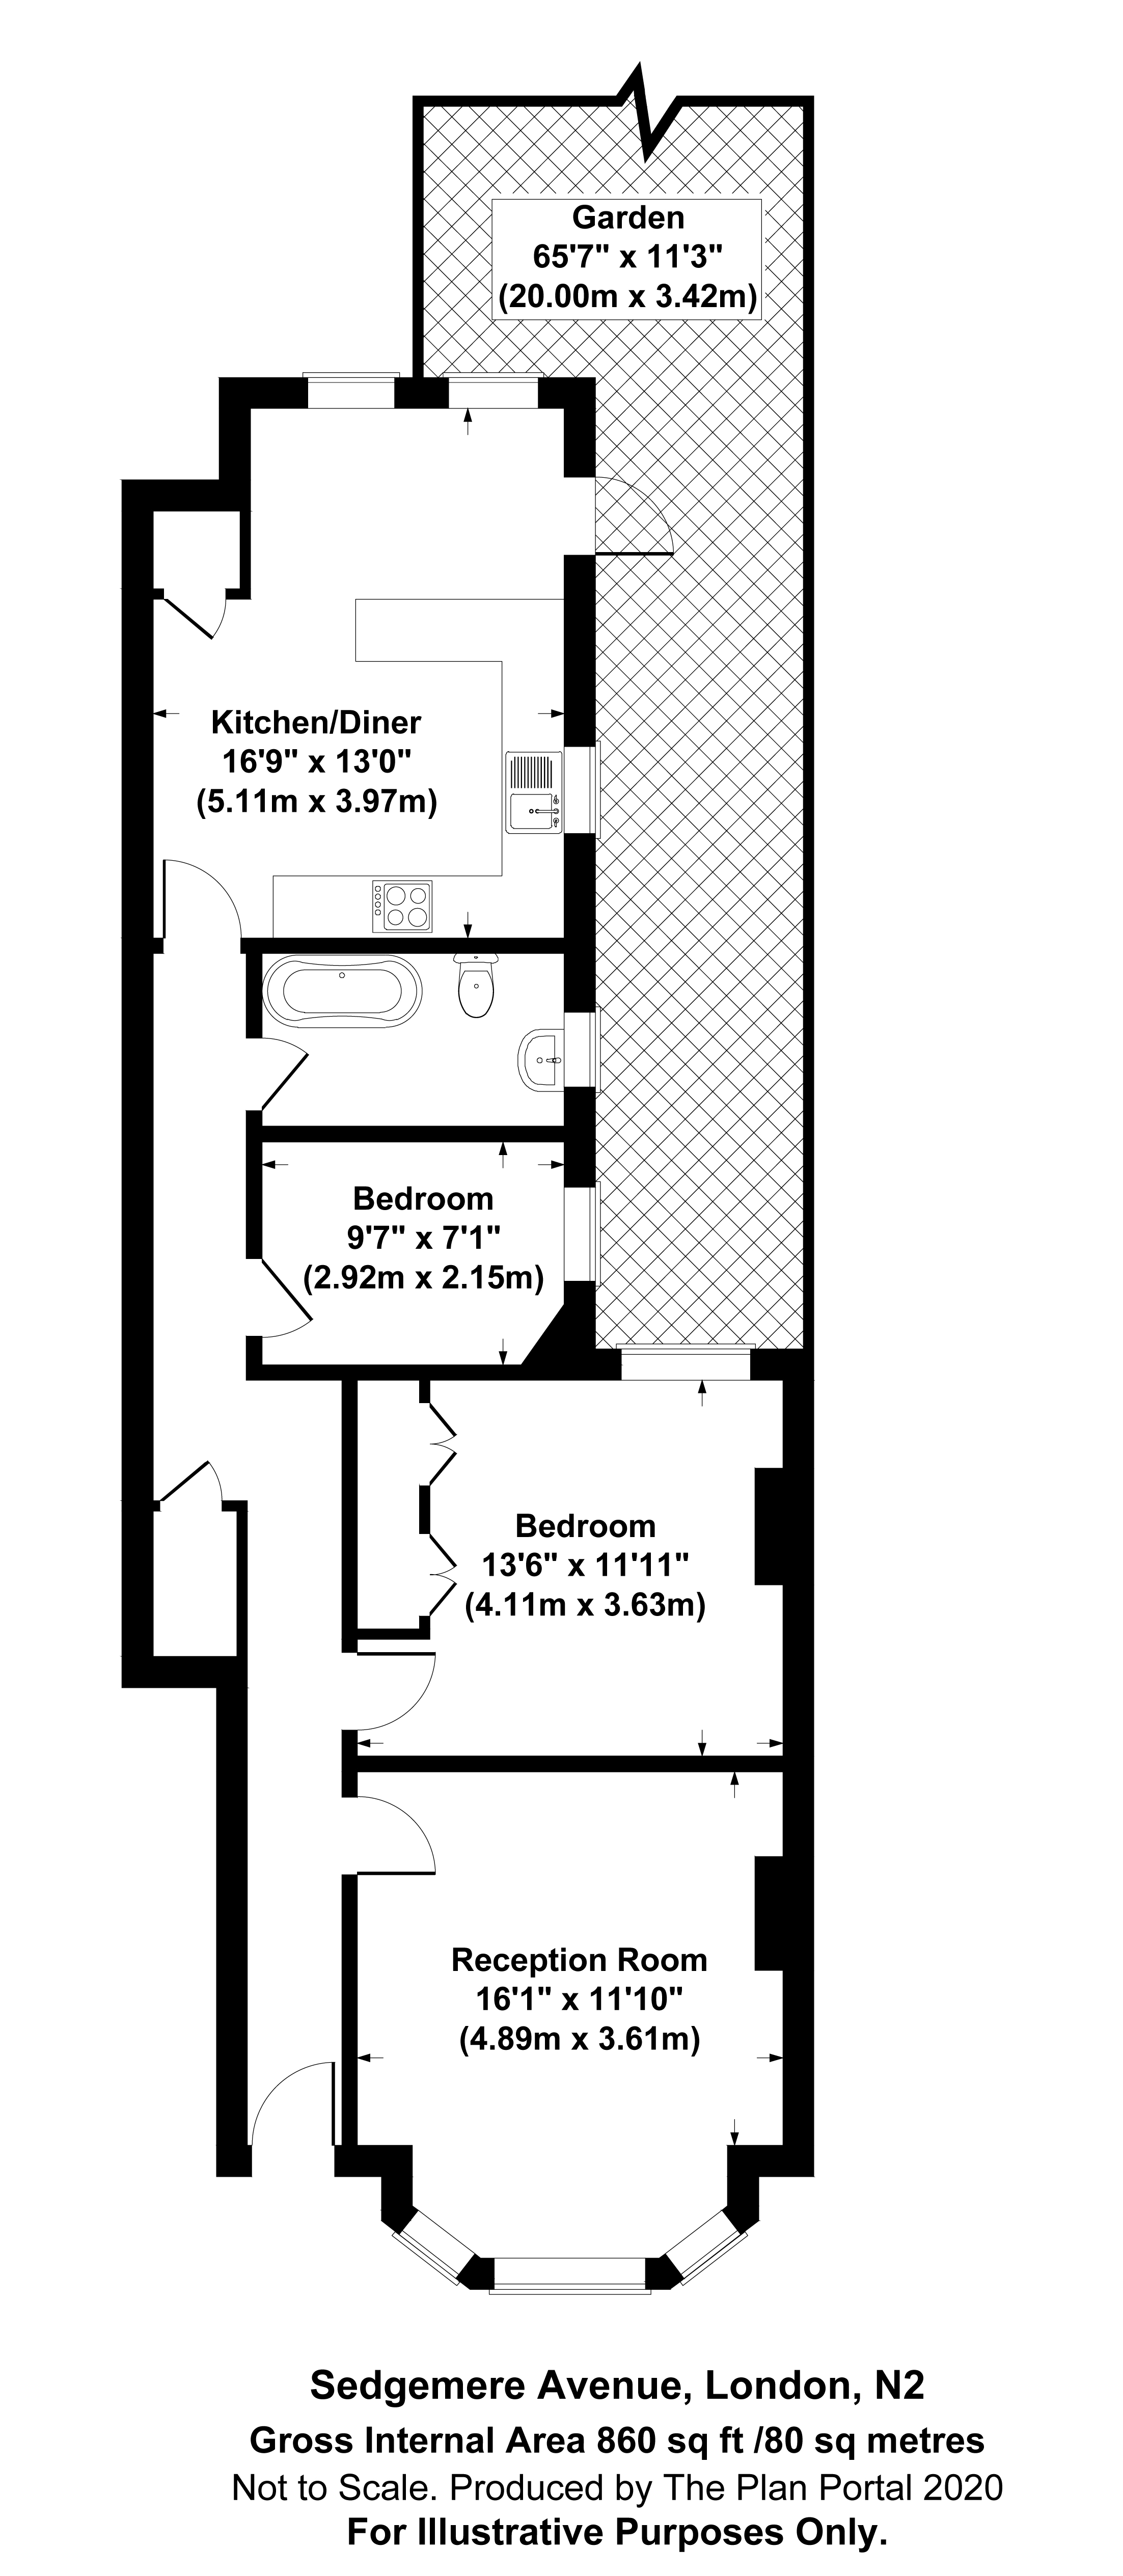 2 bed apartment for sale in East Finchley, N2 0SX - Property Floorplan